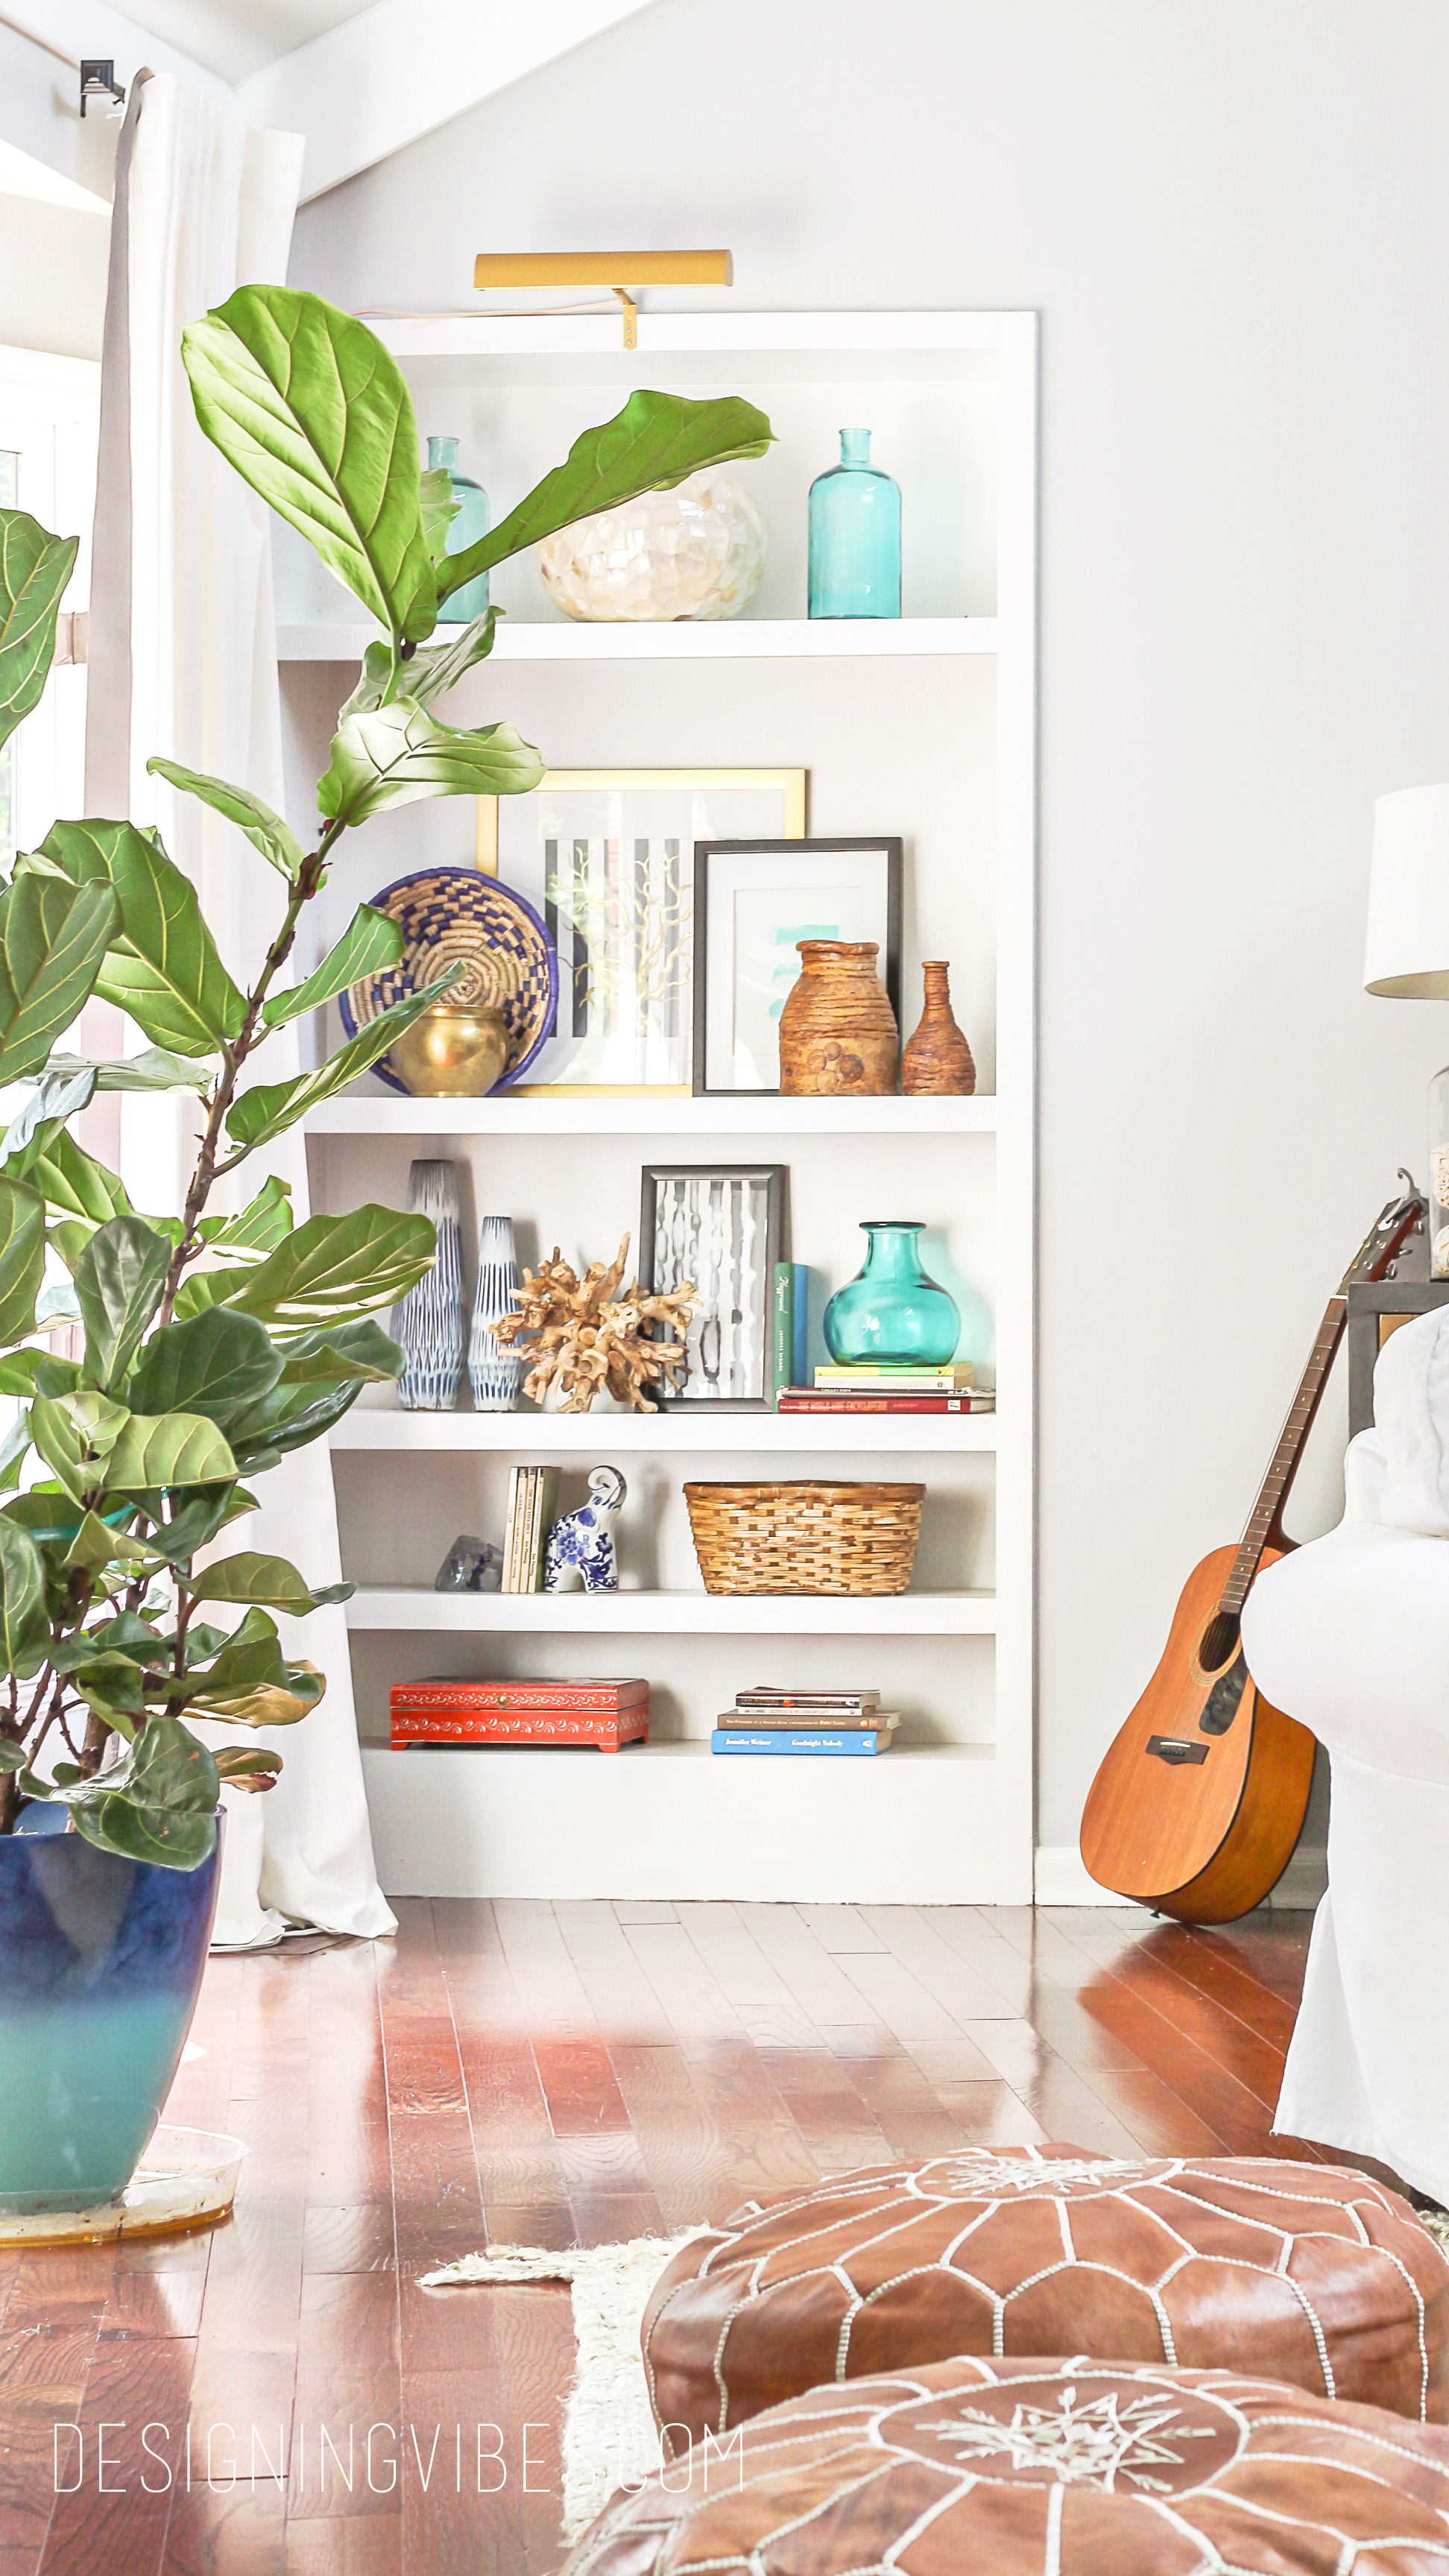 How to Care for a Fiddle Leaf Fig – Black Thumb's Guide